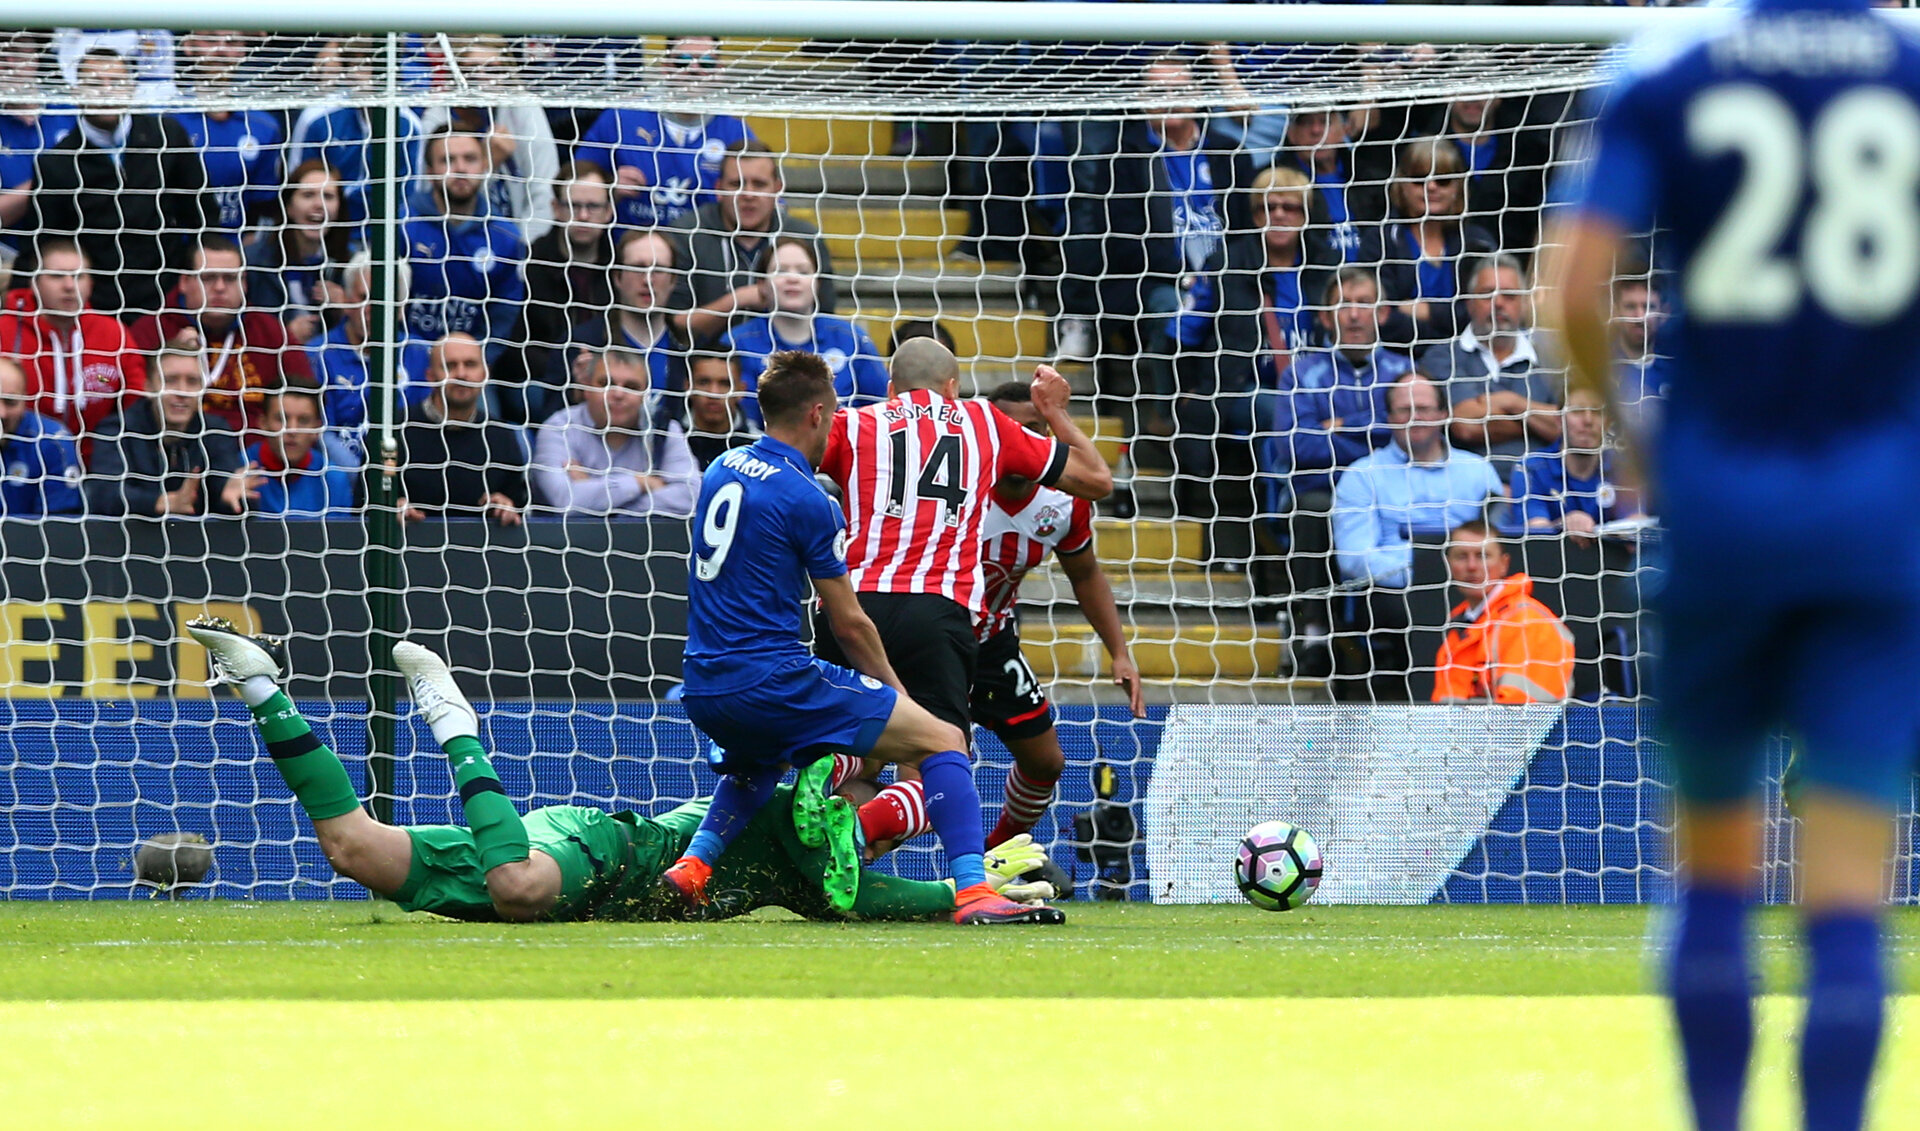 Fraser Forster denies Jamie Vardy  during the Premier League match between Leicester City and Southampton at the King Power Stadium, Leicester, England on 2 October 2016. Photo by Matt  Watson/SFC/Digital South.